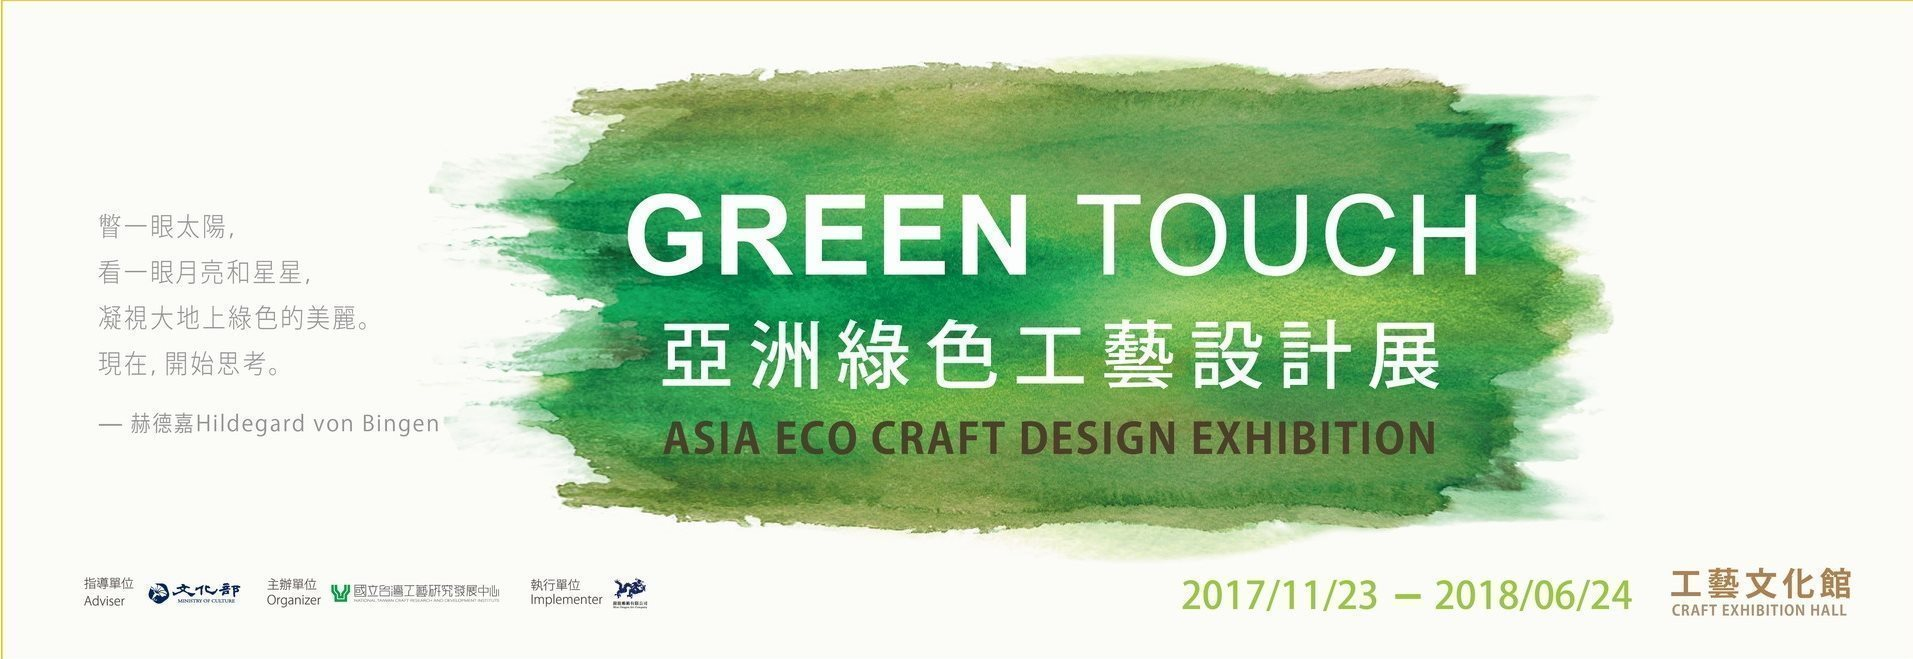 Green Touch: Asia Eco Craft Design Exhibition[另開新視窗]